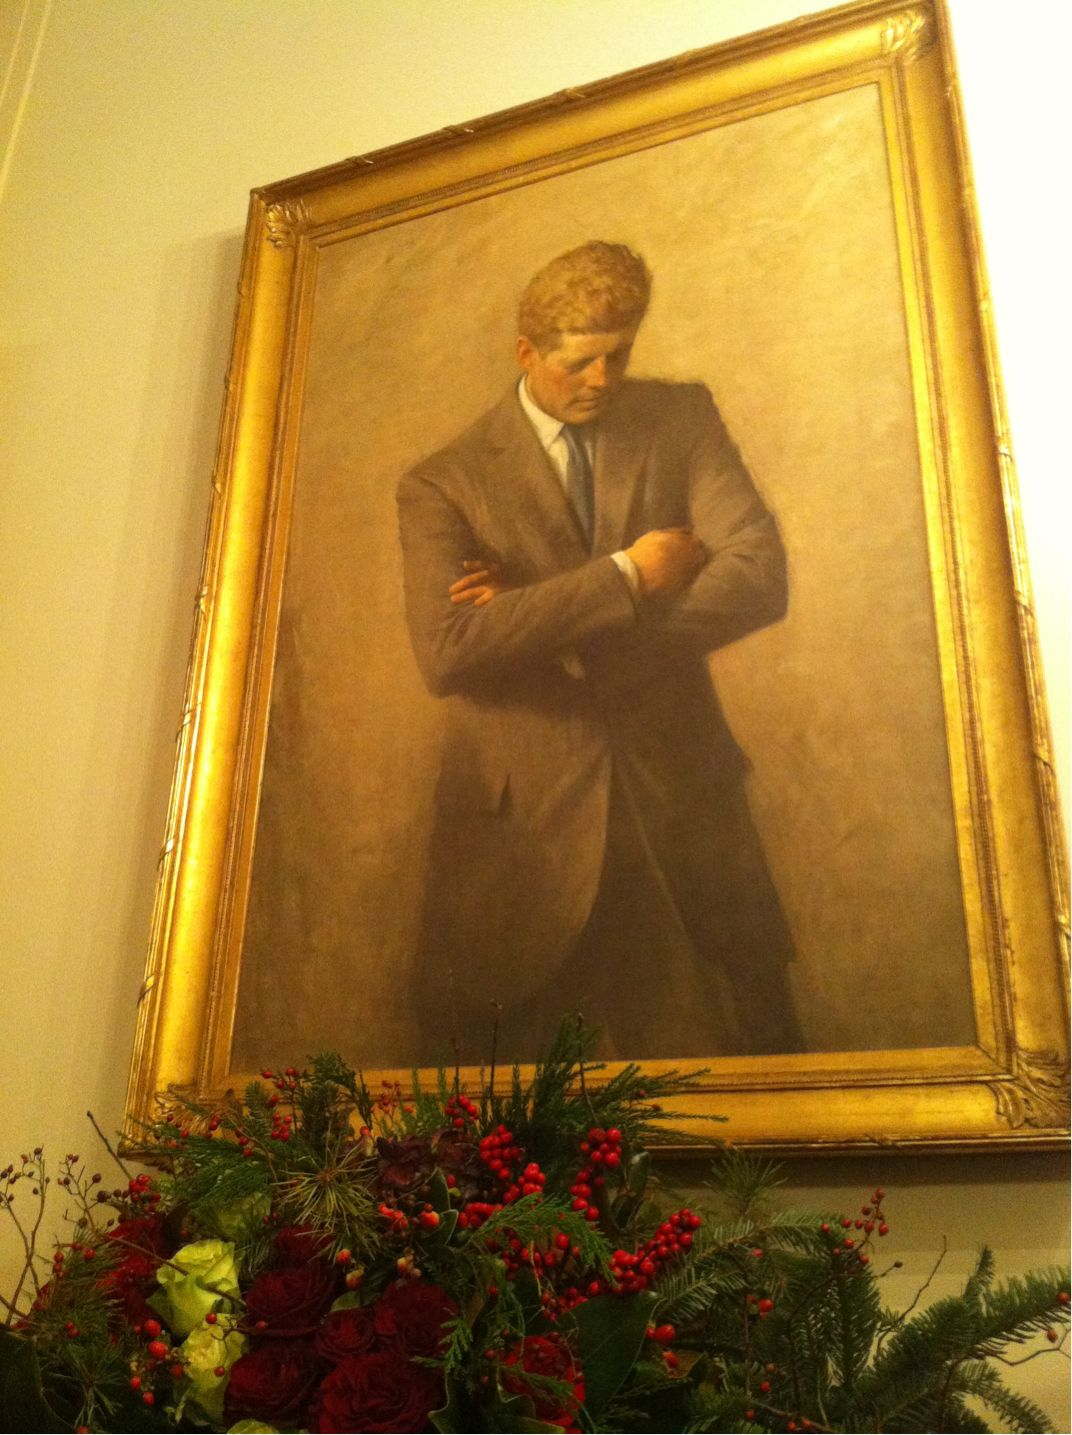 Jfk Portrait In The White House Jfk Portrait Portrait